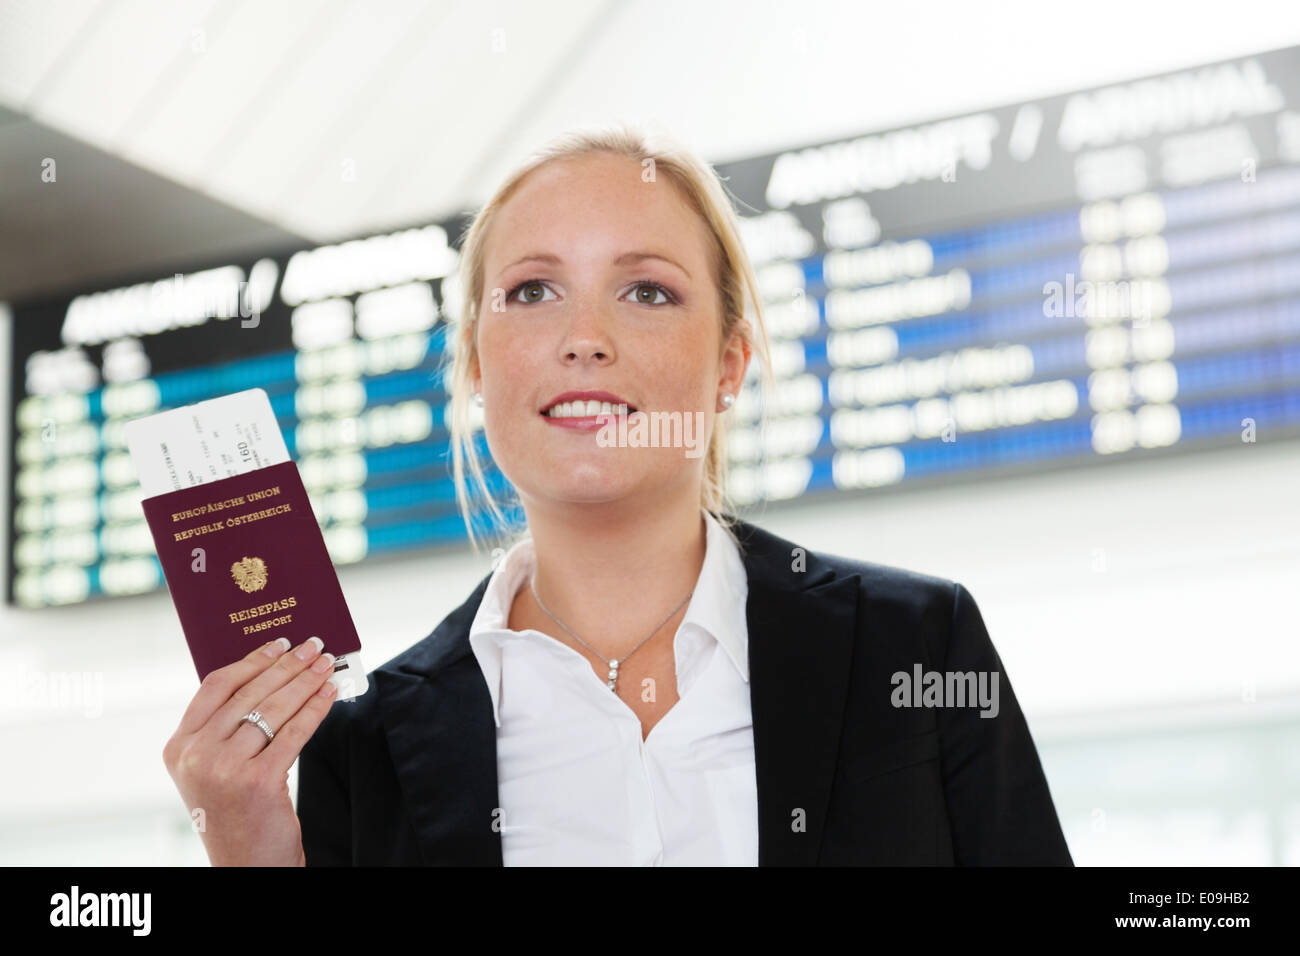 Woman with passport and flight tickets on an airport waits for her takeoff in the vacation., Frau mit Reisepass und Flugtickets - Stock Image